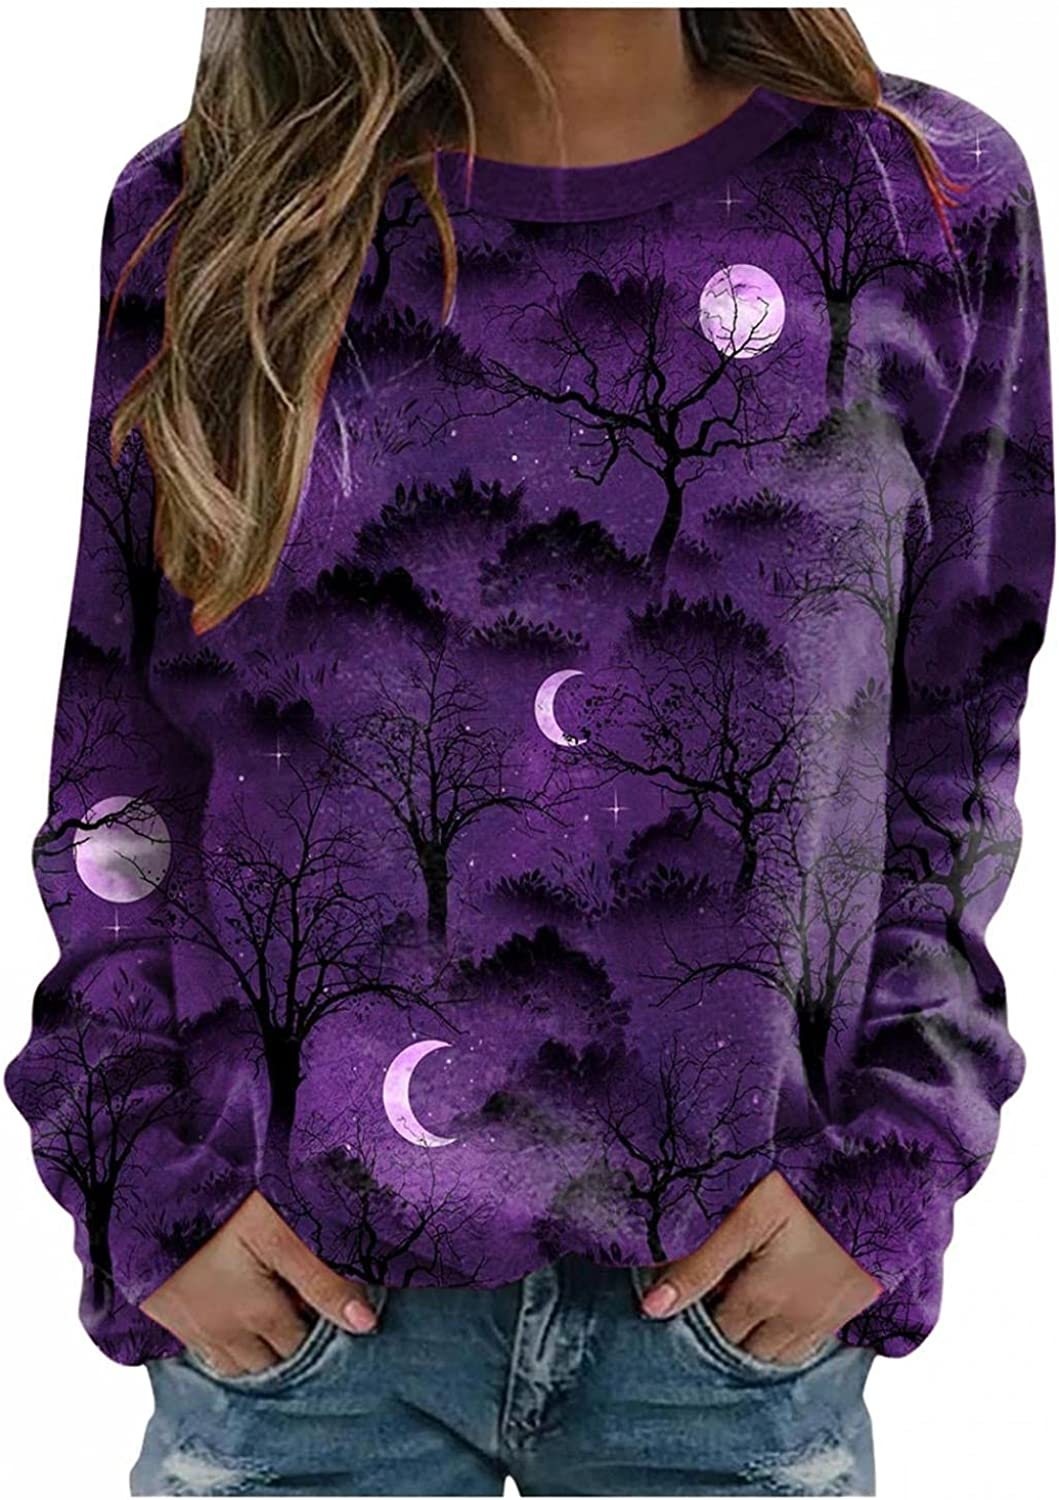 TAYBAGH Halloween Shirts for Women,Womens Fashion Halloween Printed Long Sleeve Sweatshirts Casual Pullover Blouse Tops